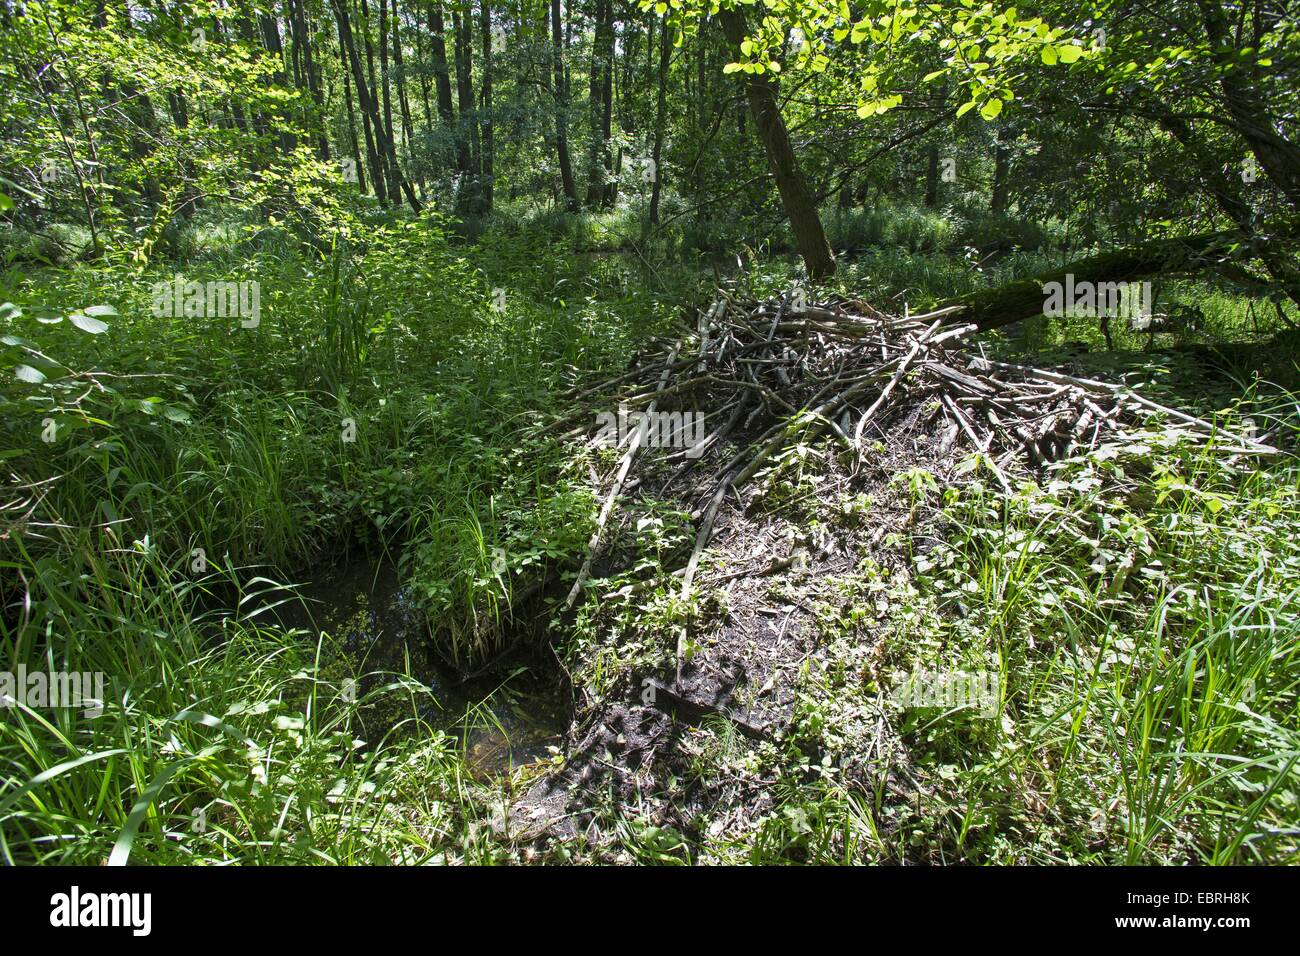 beaver lodge in a floodplain forest, Germany - Stock Image